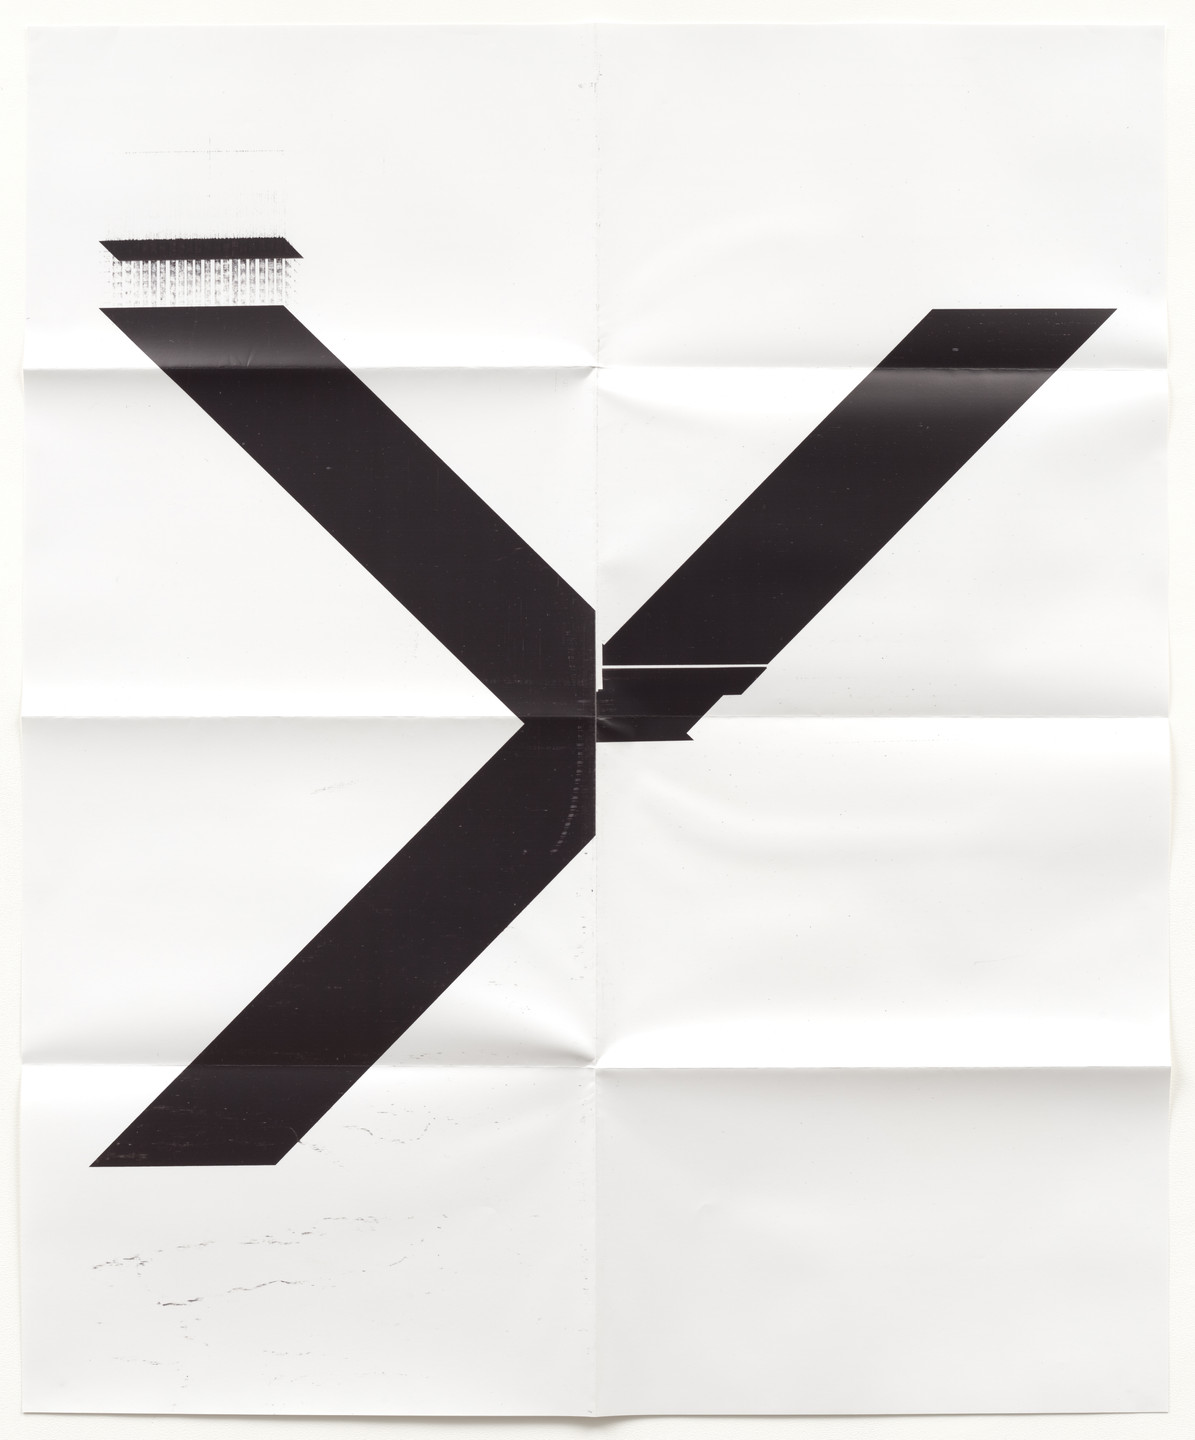 Wade Guyton. X Poster (Untitled, 2007, Epson UltraChrome inkjet on linen, 84 x 69 inches, WG1211). 2019